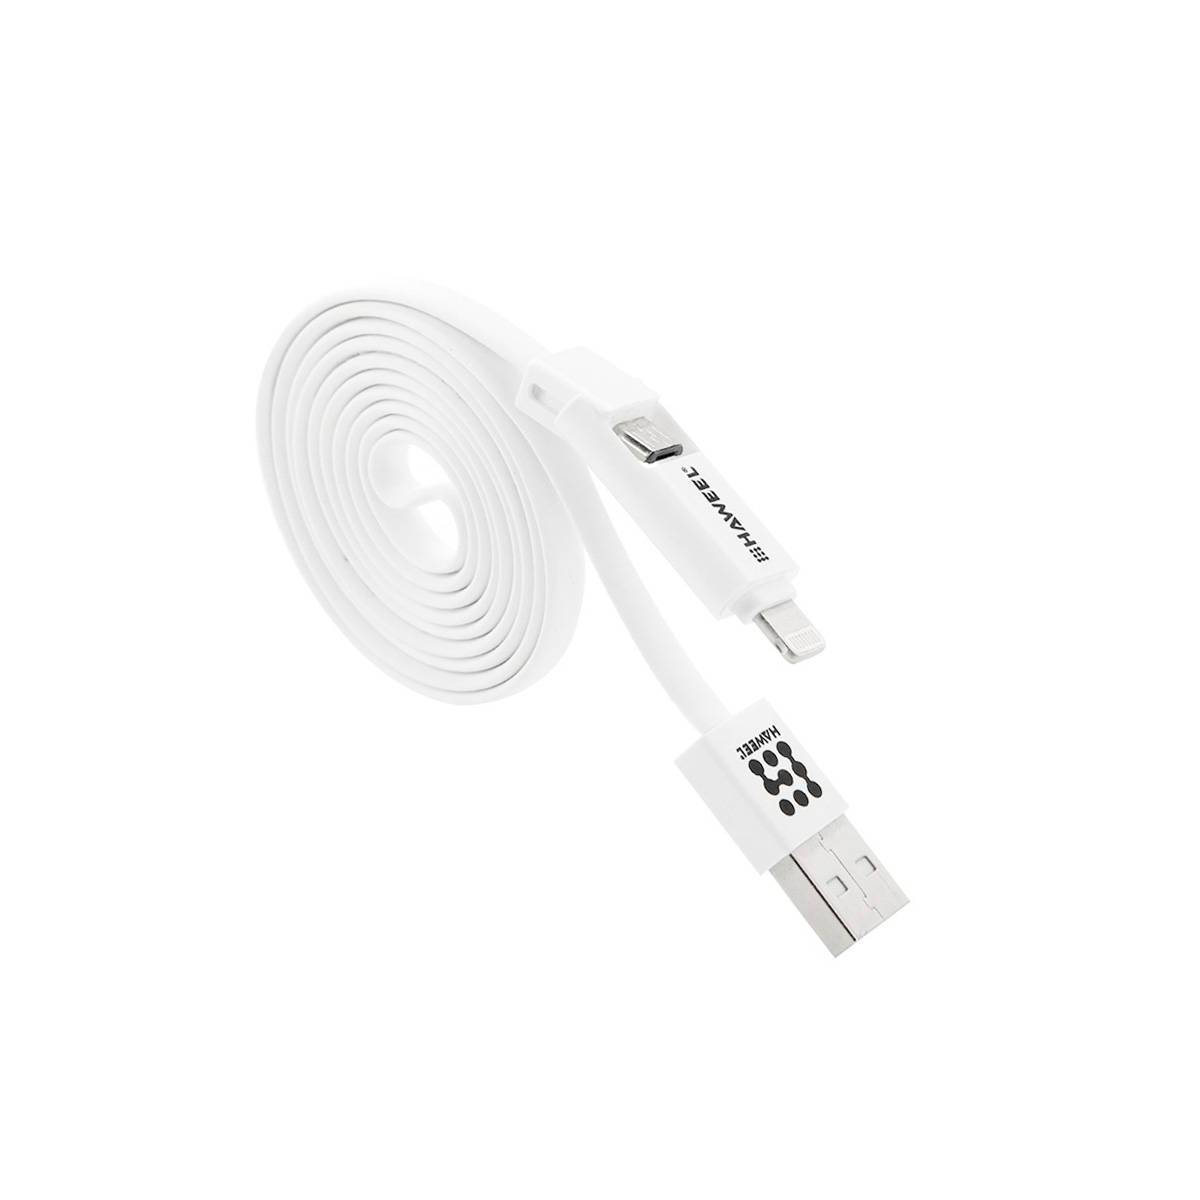 Bilpakke til iPhone med lader, kabel og holder Mackabler